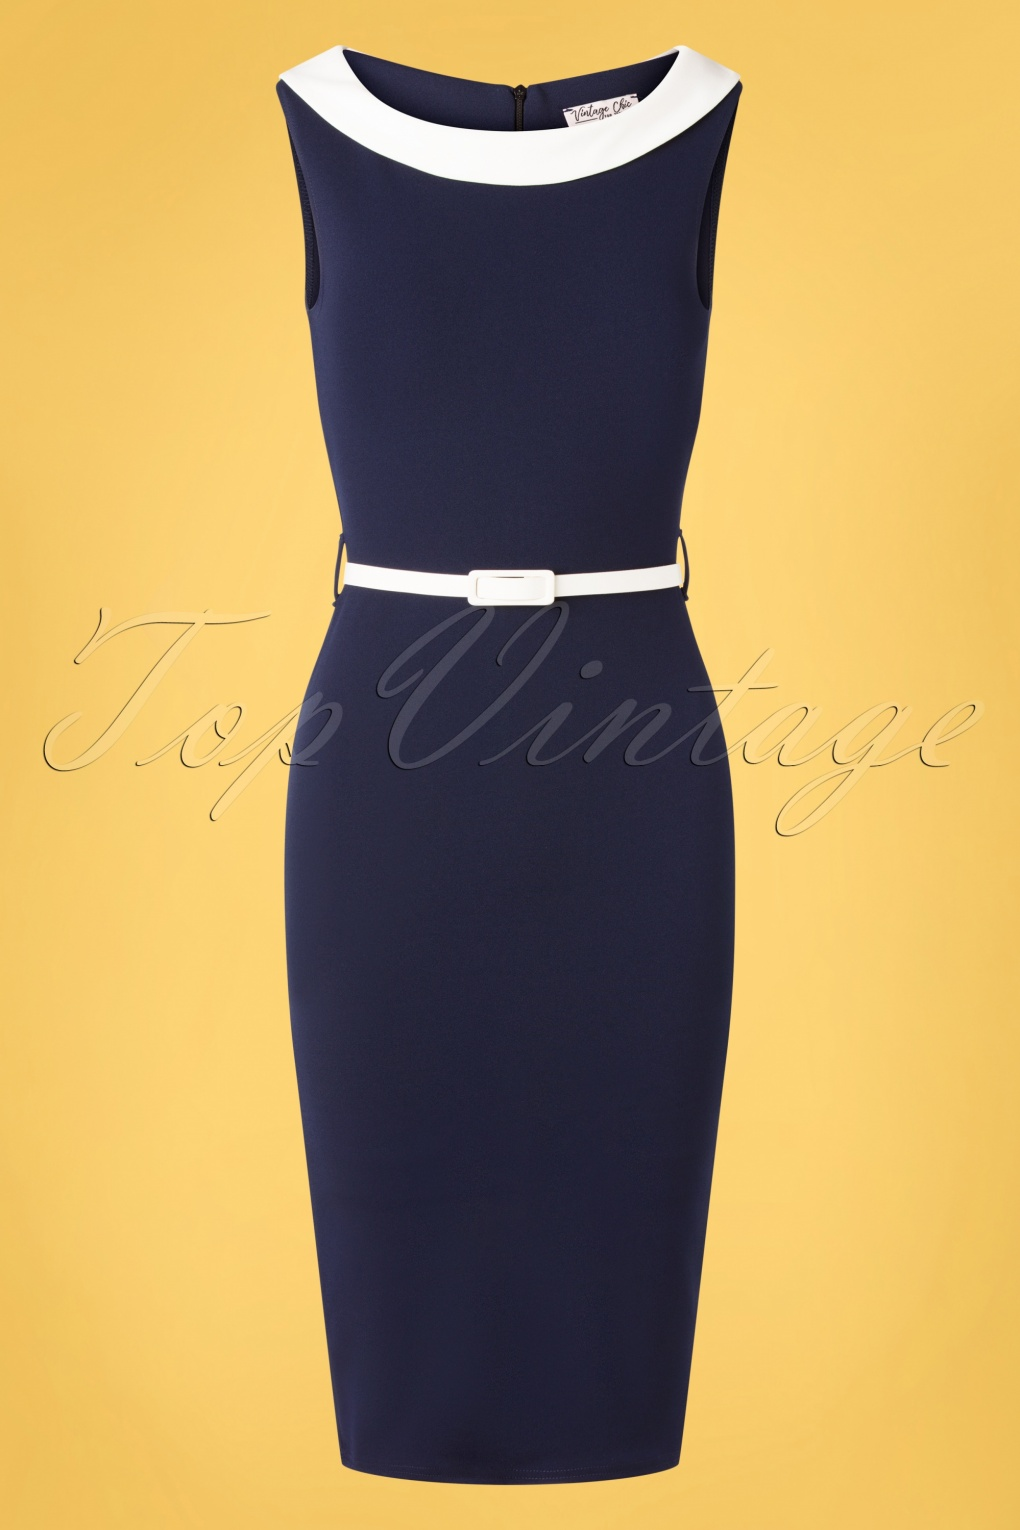 500 Vintage Style Dresses for Sale | Vintage Inspired Dresses 50s Bessy Pencil Dress in Navy and Ivory £43.83 AT vintagedancer.com